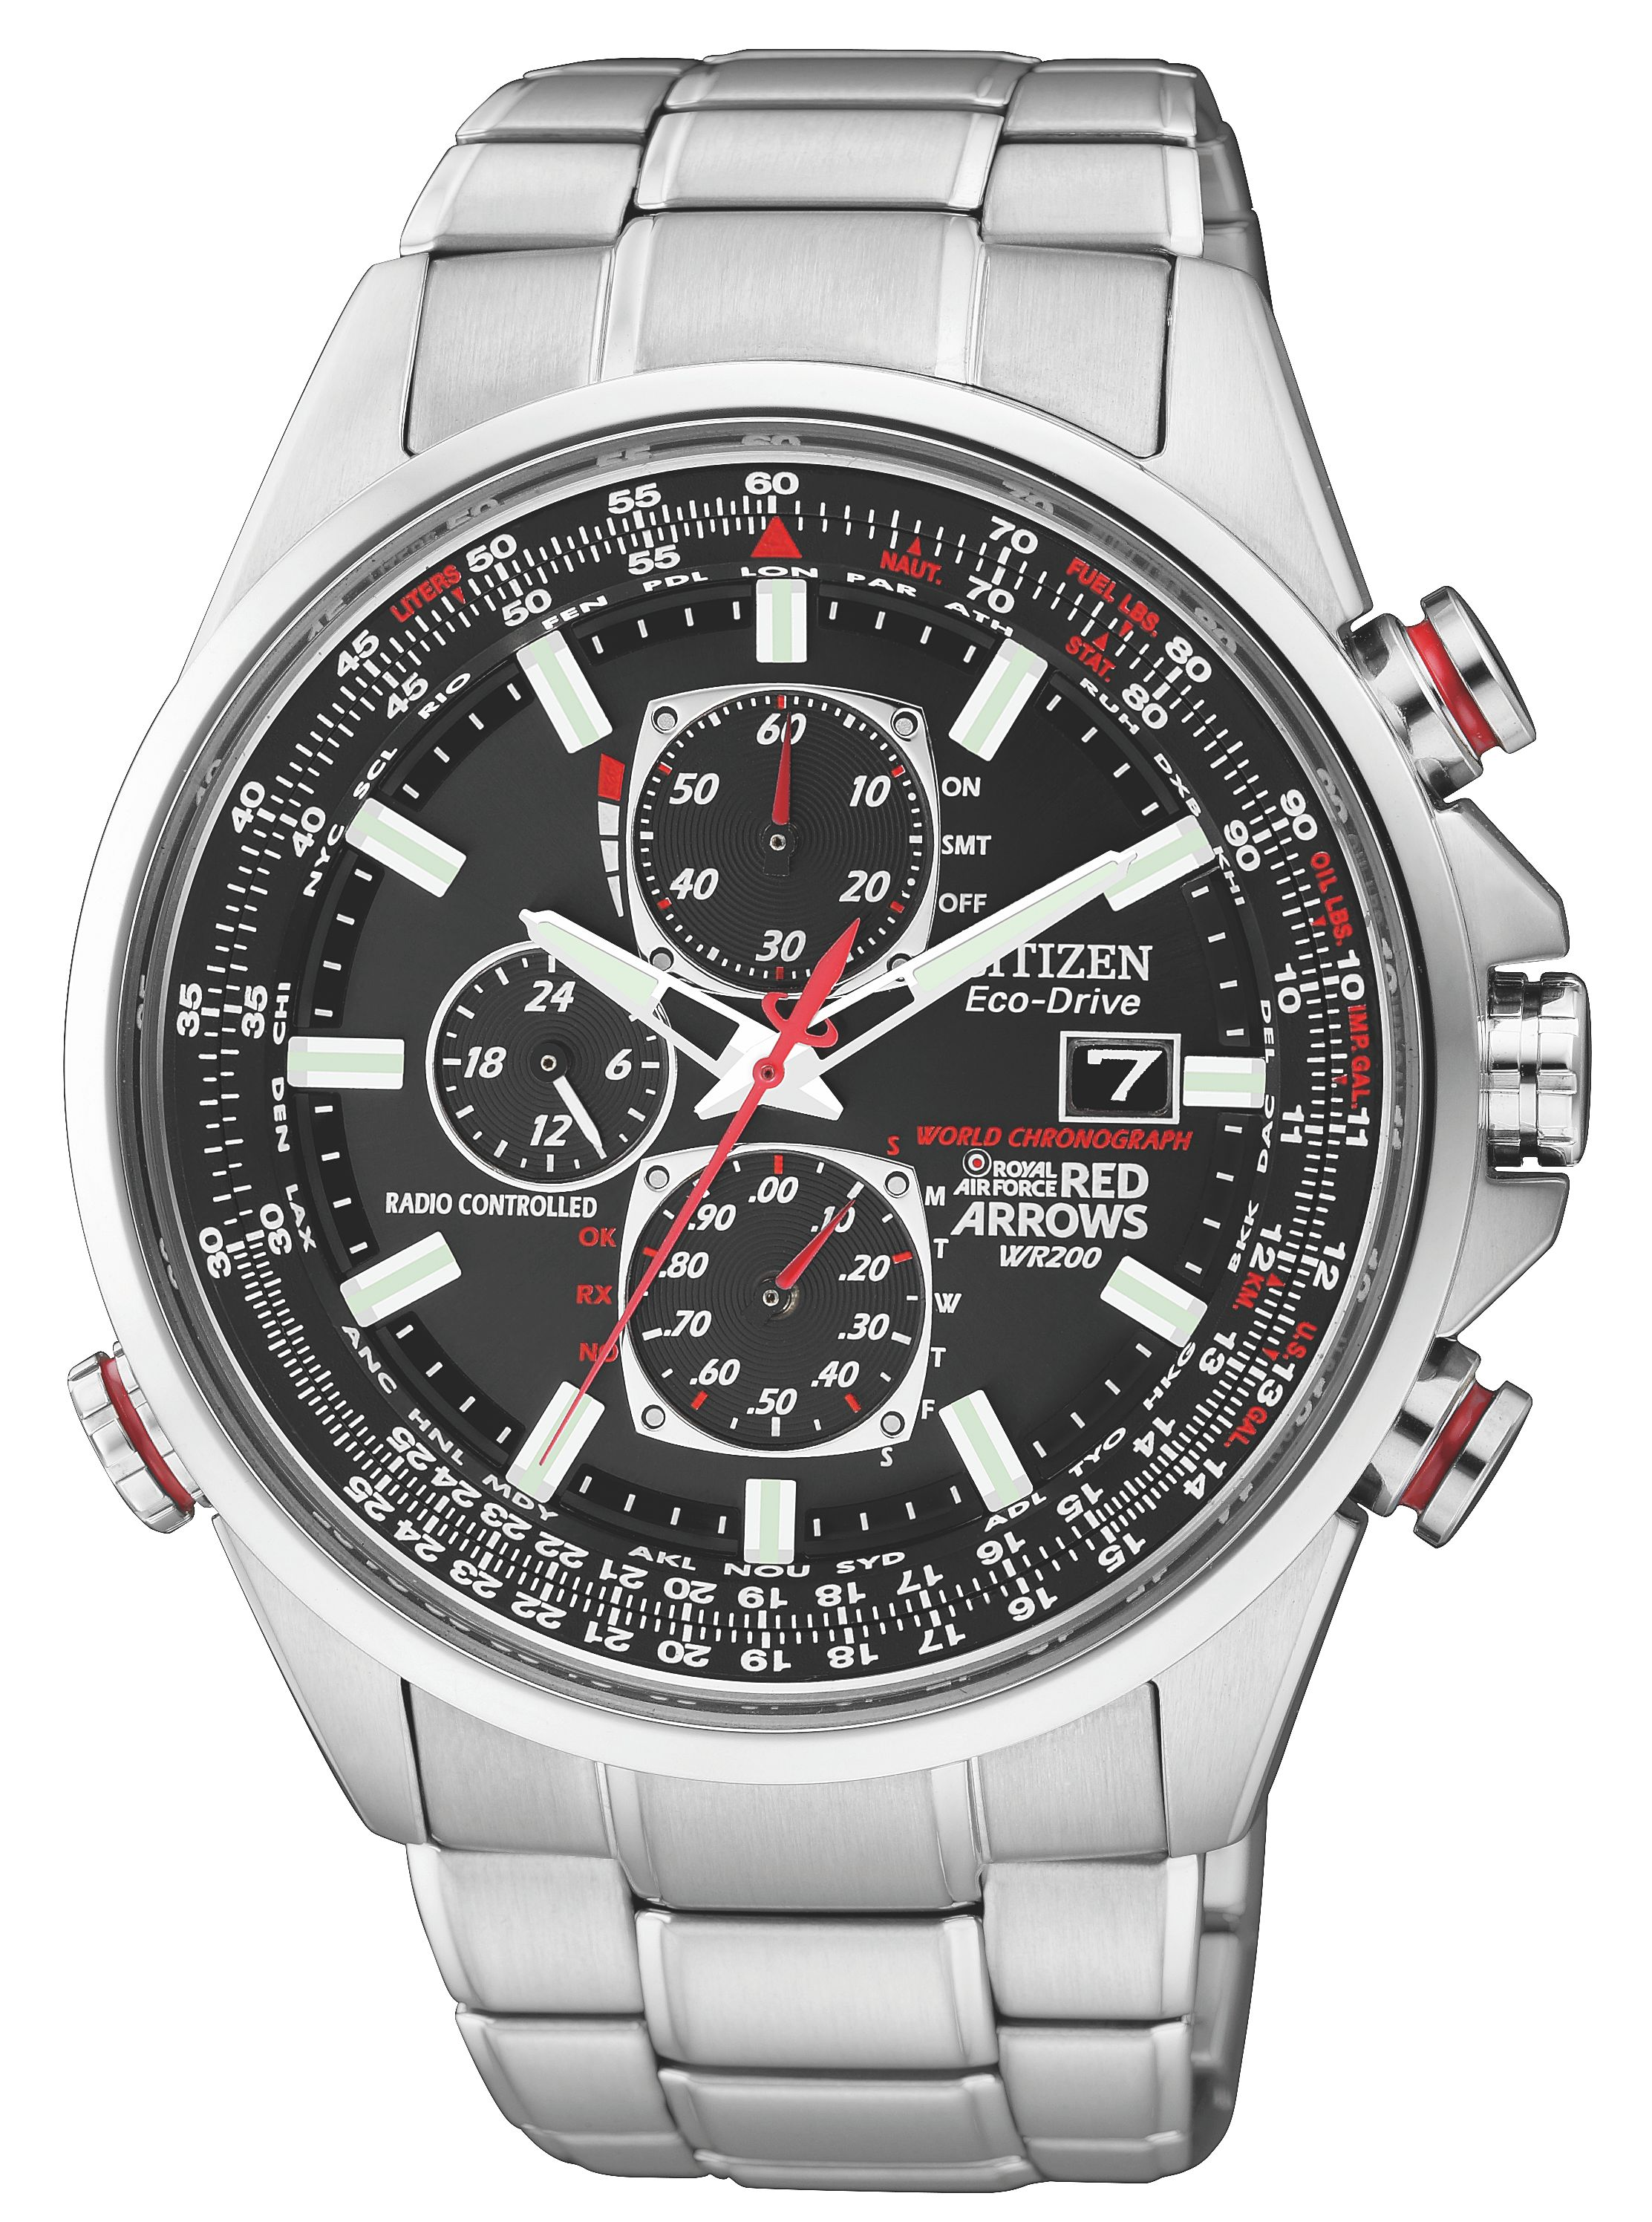 Citizen Eco-drive red arrows world chrono mens watch, Silver